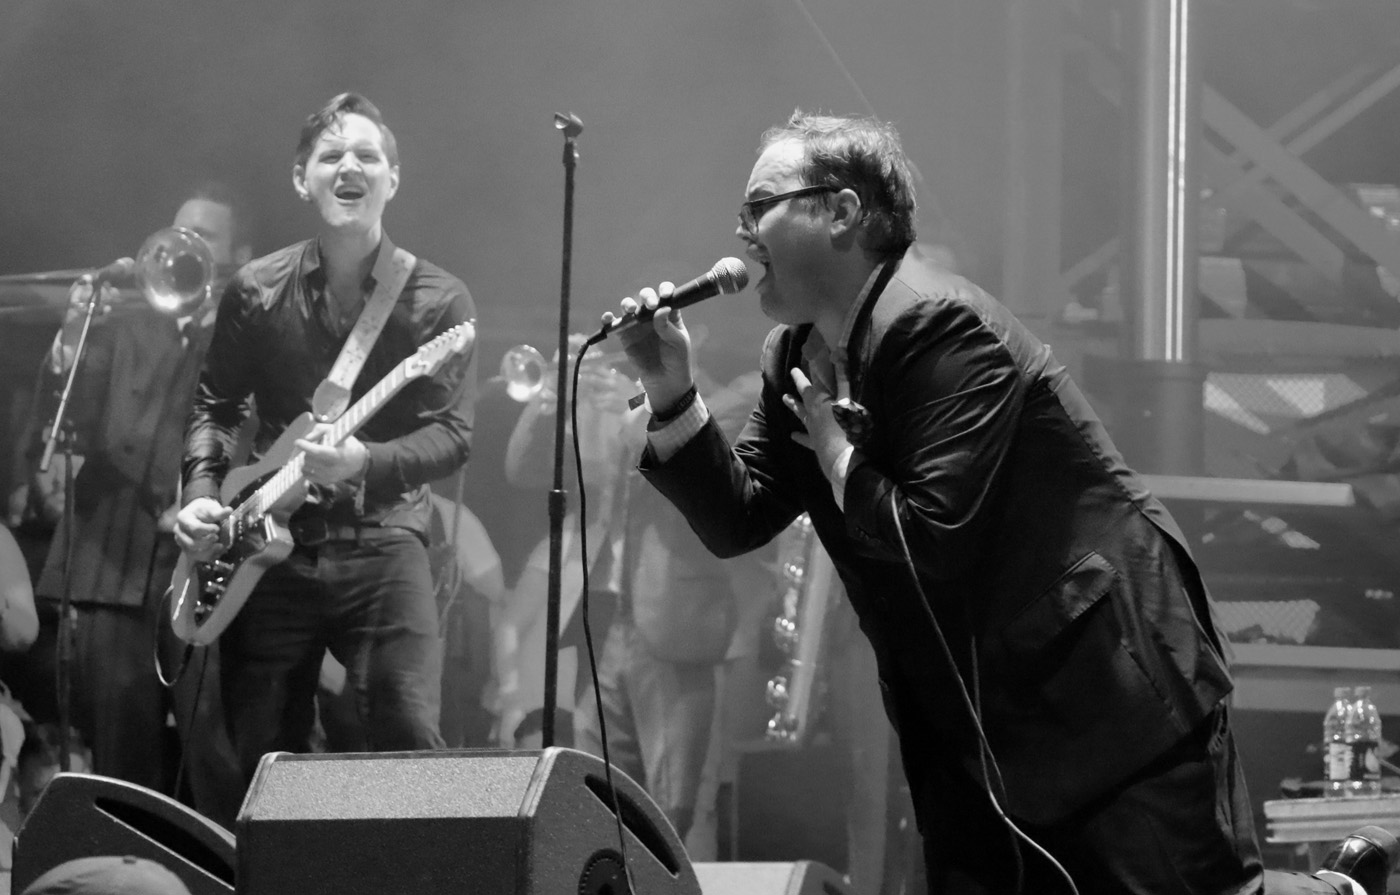 Browan Lollar, left, and Paul Janeway, right, of St. Paul and the Broken Bones perform at the Sloss Music & Arts Festival in Birmingham, Ala., on Sunday, July 19, 2015. (MTSU Sidelines / John Connor Coulston)